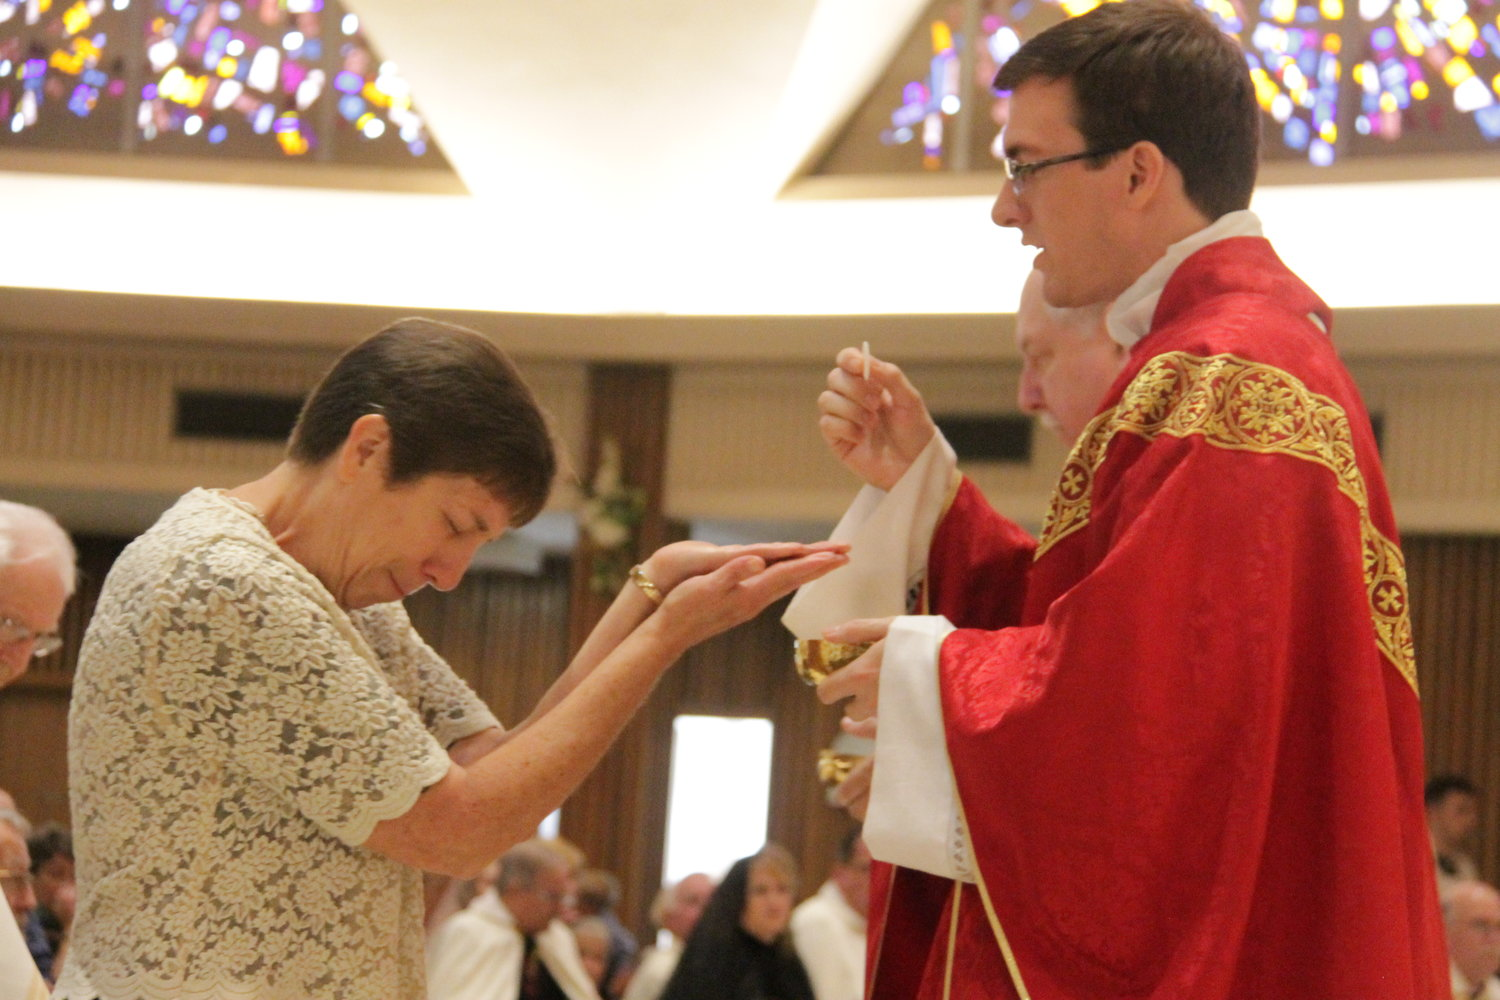 Newly ordained Father Brad Berhorst gives Holy Communion to his mother, Rosemary Berhorst, during his Ordination Mass.